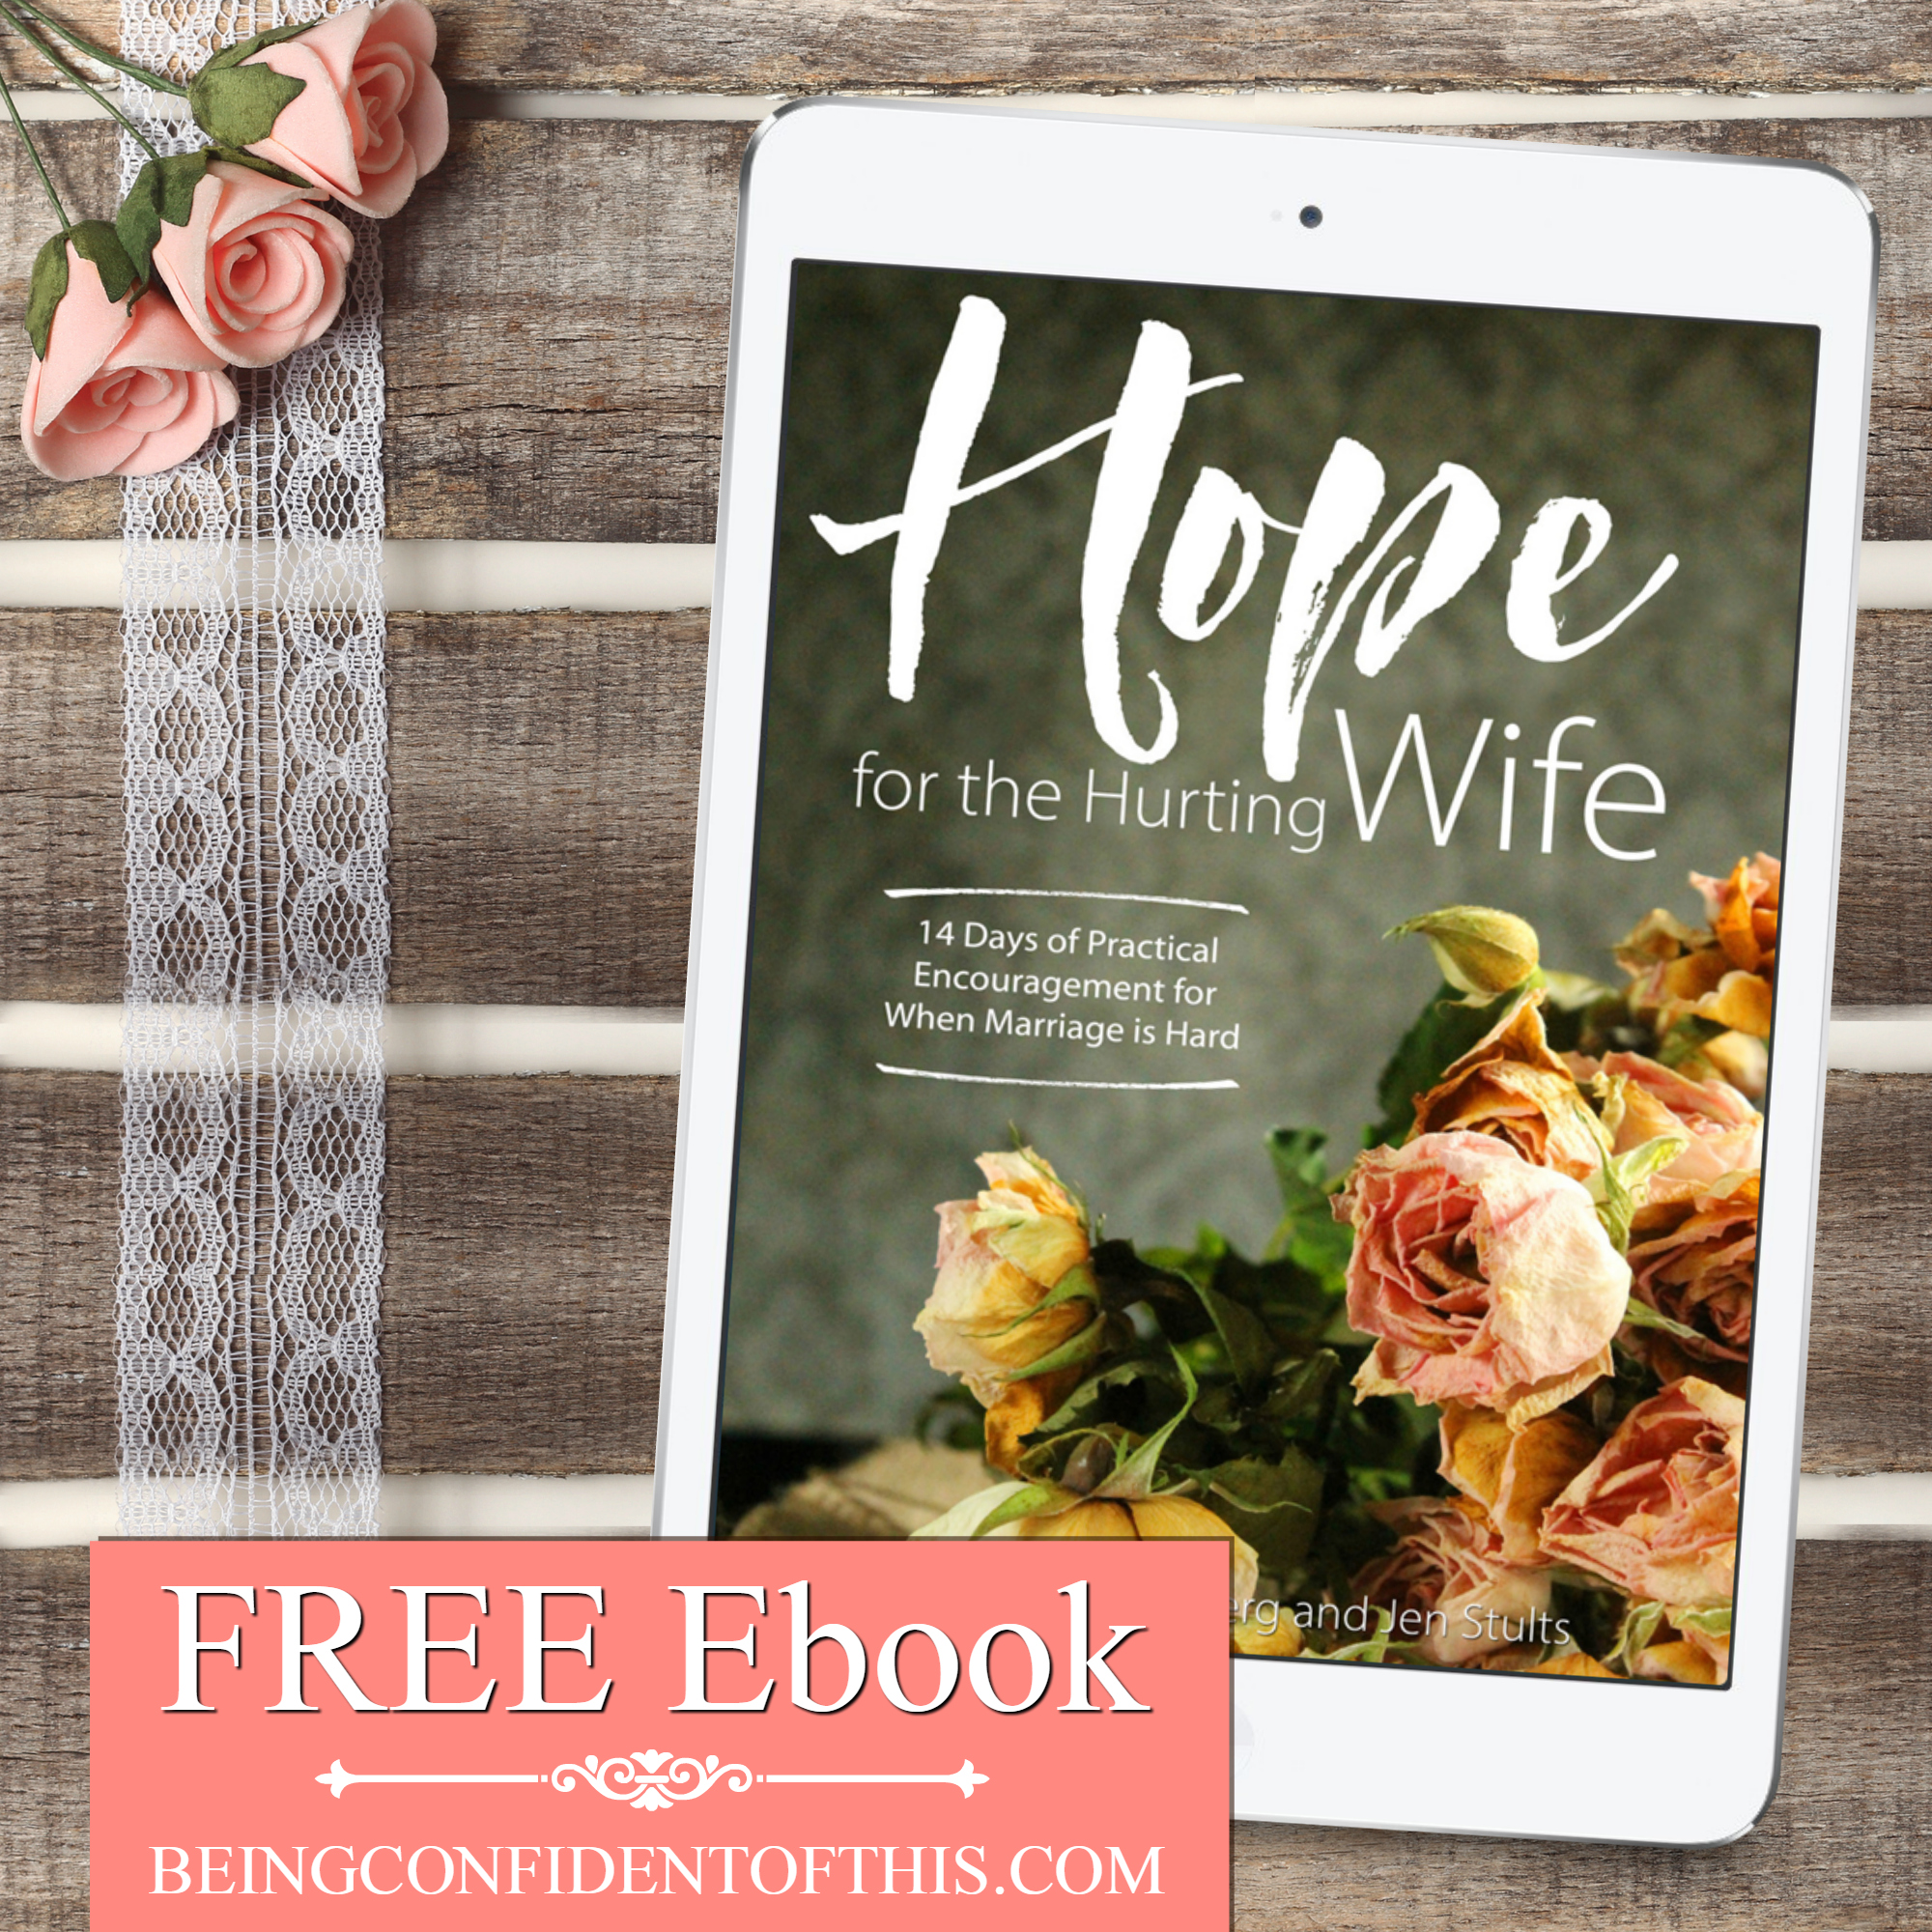 Are you frustrated by failure you in your marriage? Do you wish your marriage was stronger? We're offering this free ebook, Hope for the Hurting Wife, for a limited time only! discouraged wife, want to be a good wife, feeling unloved, husband doesn't love me, troubled marriage, difficult marriage, marriage problems, confident in marriage